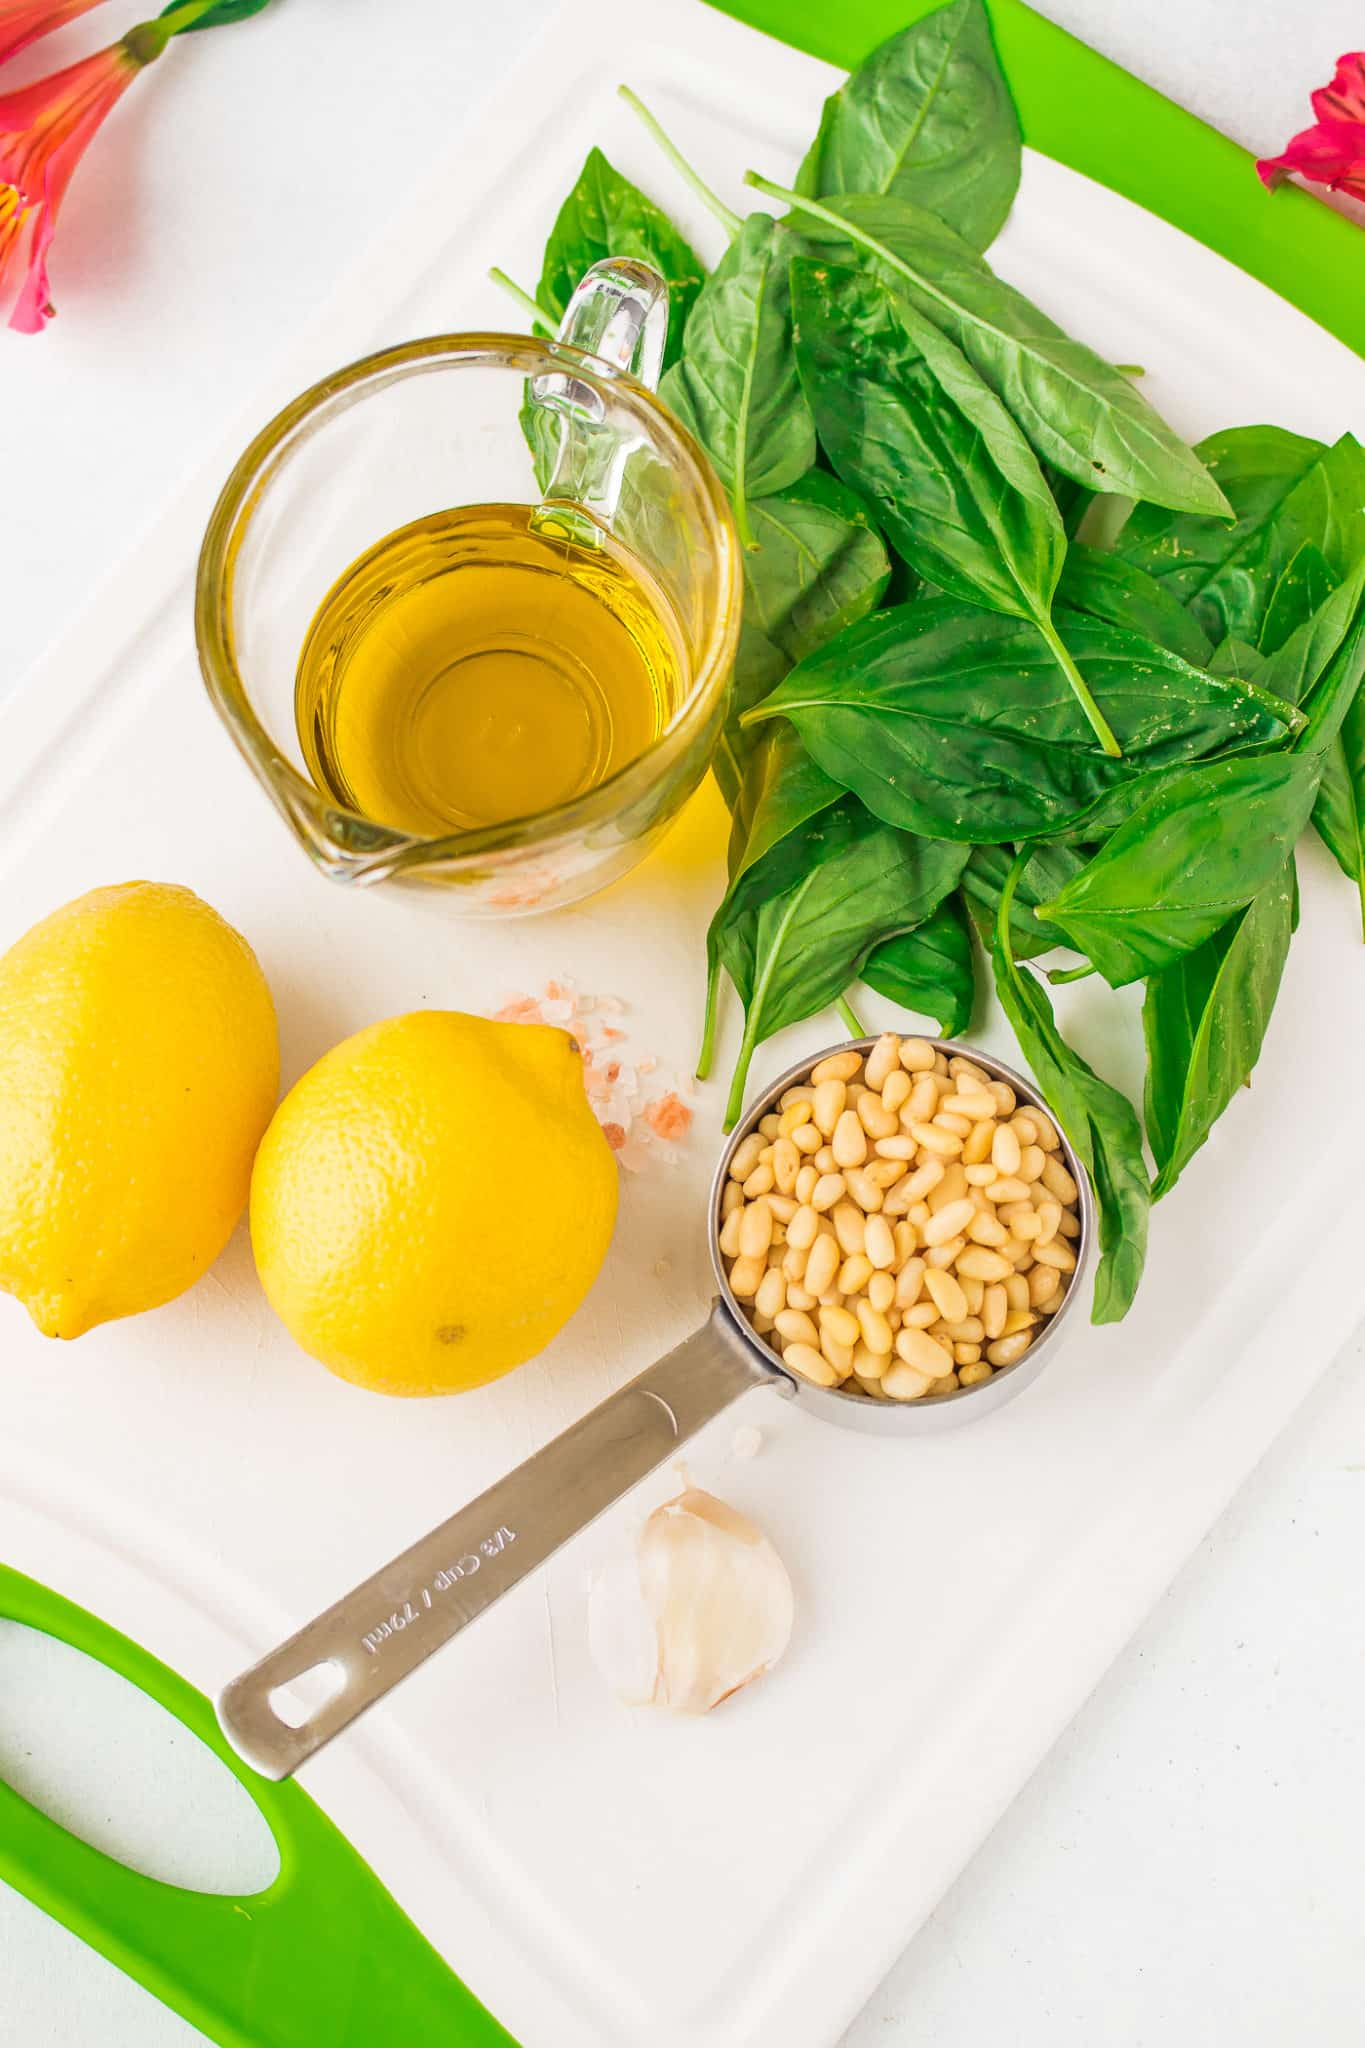 pesto sauce ingredients on a cutting board